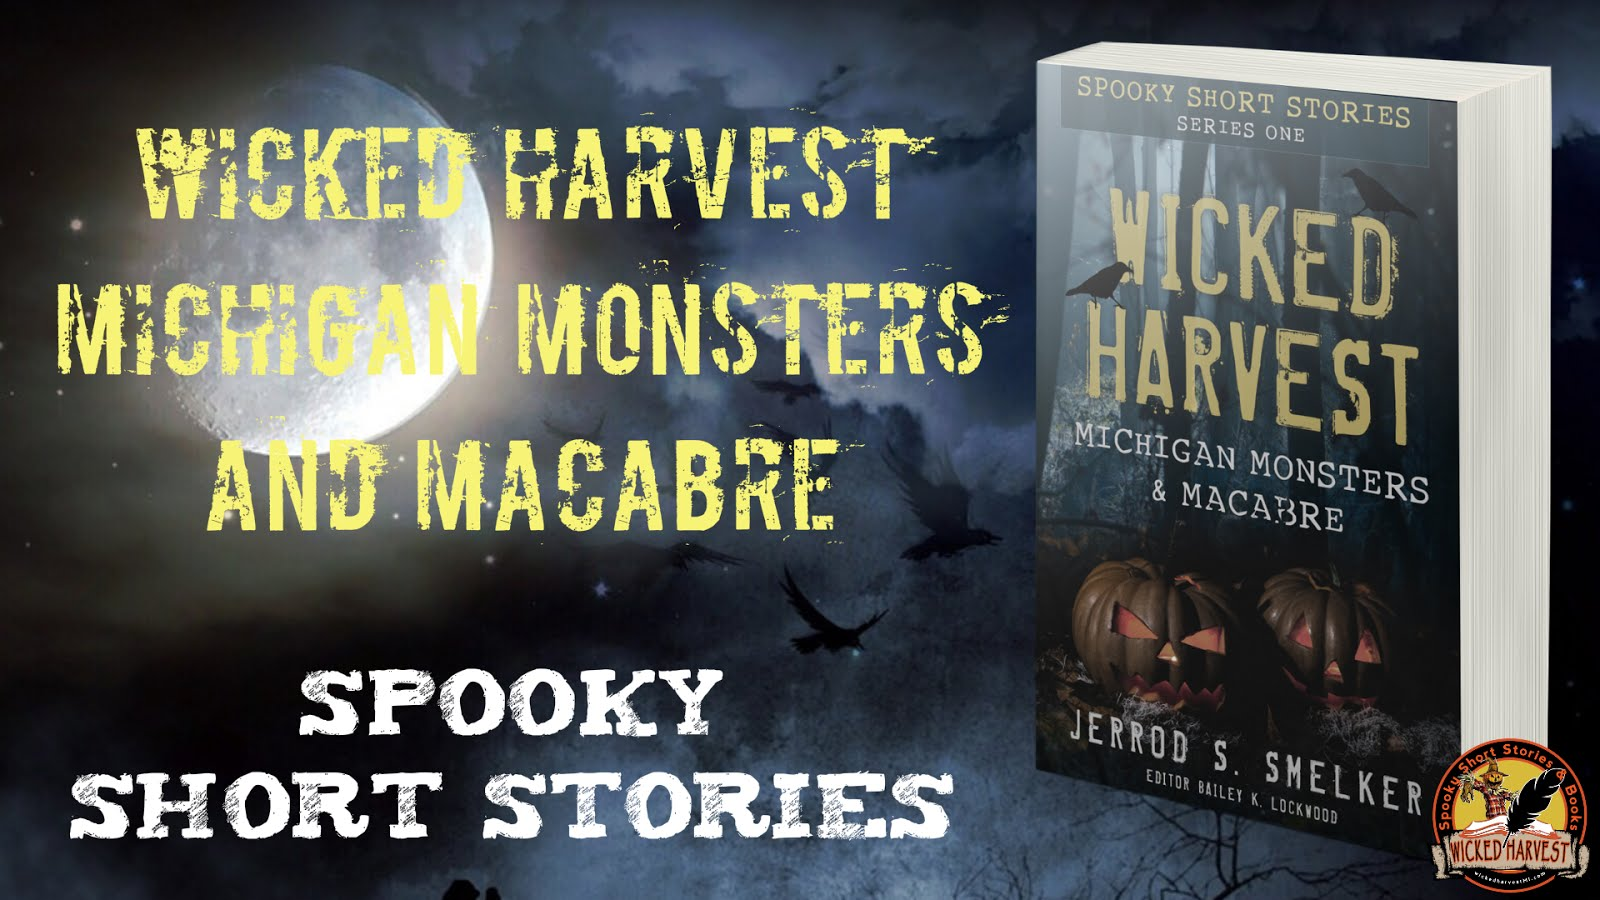 Spooky Short Stories for Halloween